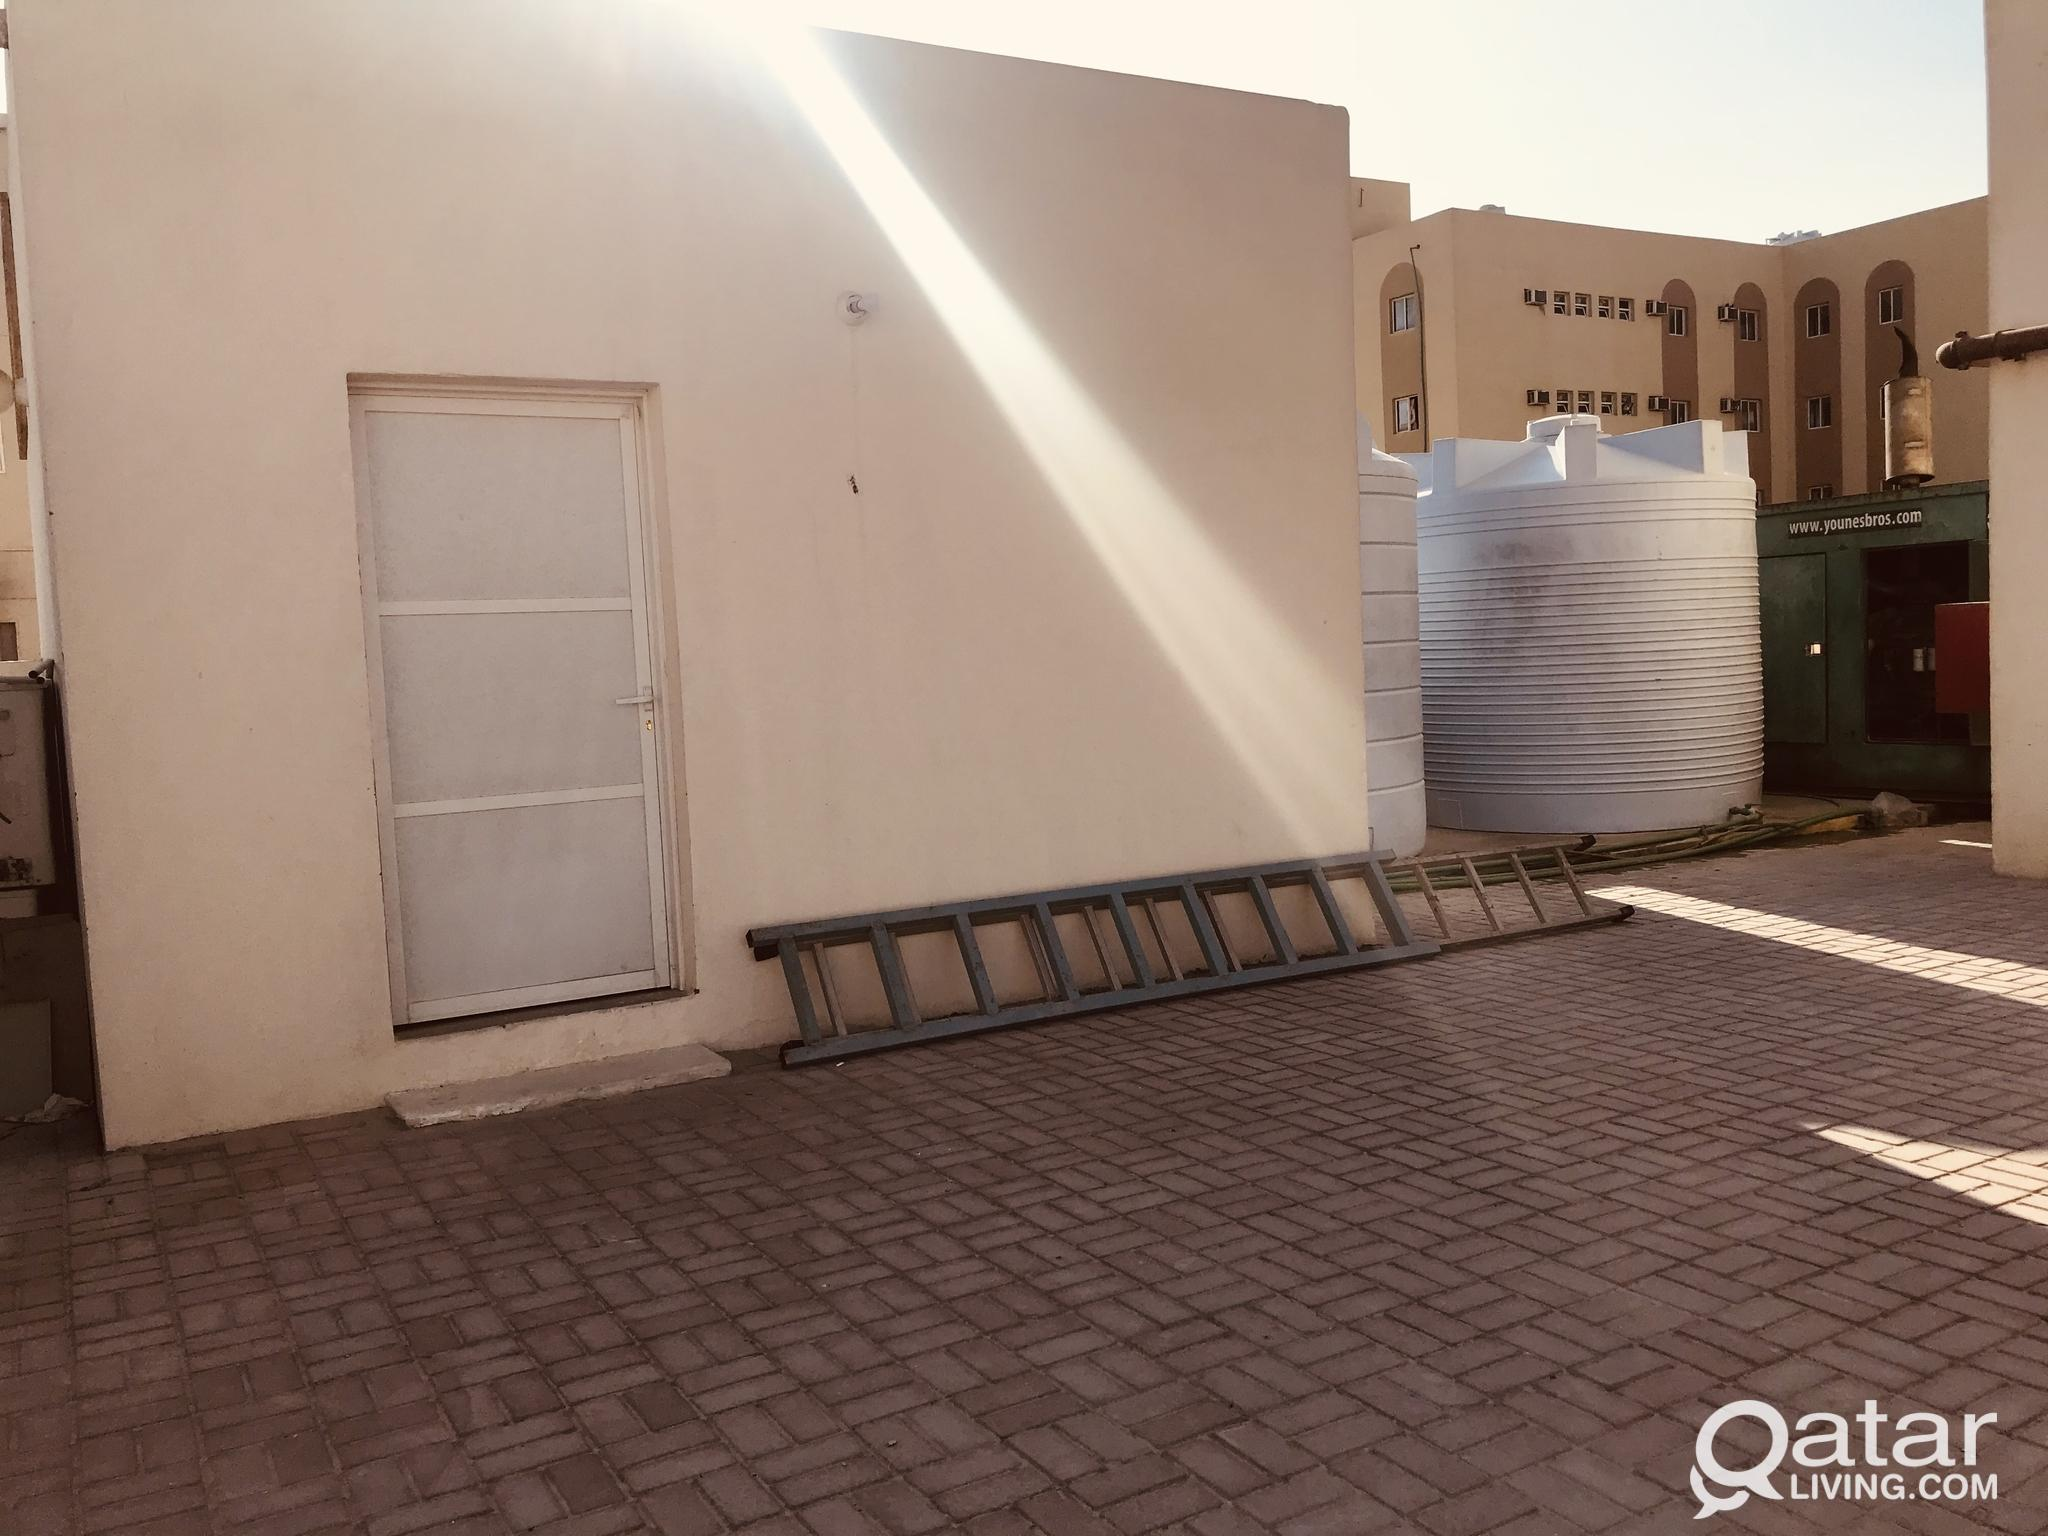 53 / 25 ROOMS FULL FURNISHED APPROVED CAMP AT ALKH